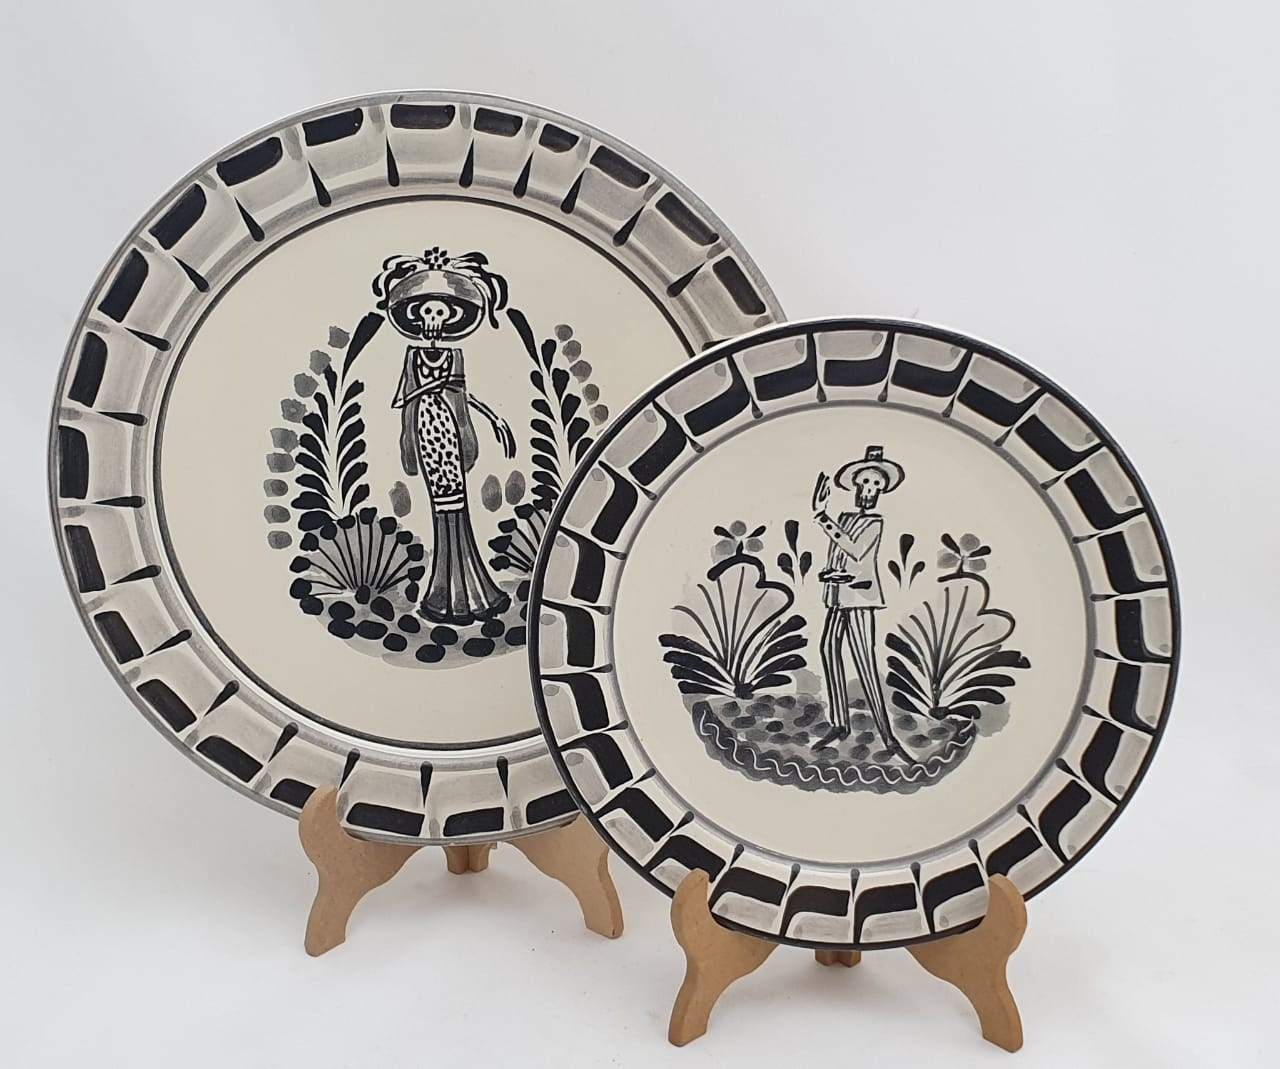 Catrina & Catrin Dinner and Salad Plate Set of 2 pieces Black and White - Mexican Pottery by Gorky Gonzalez